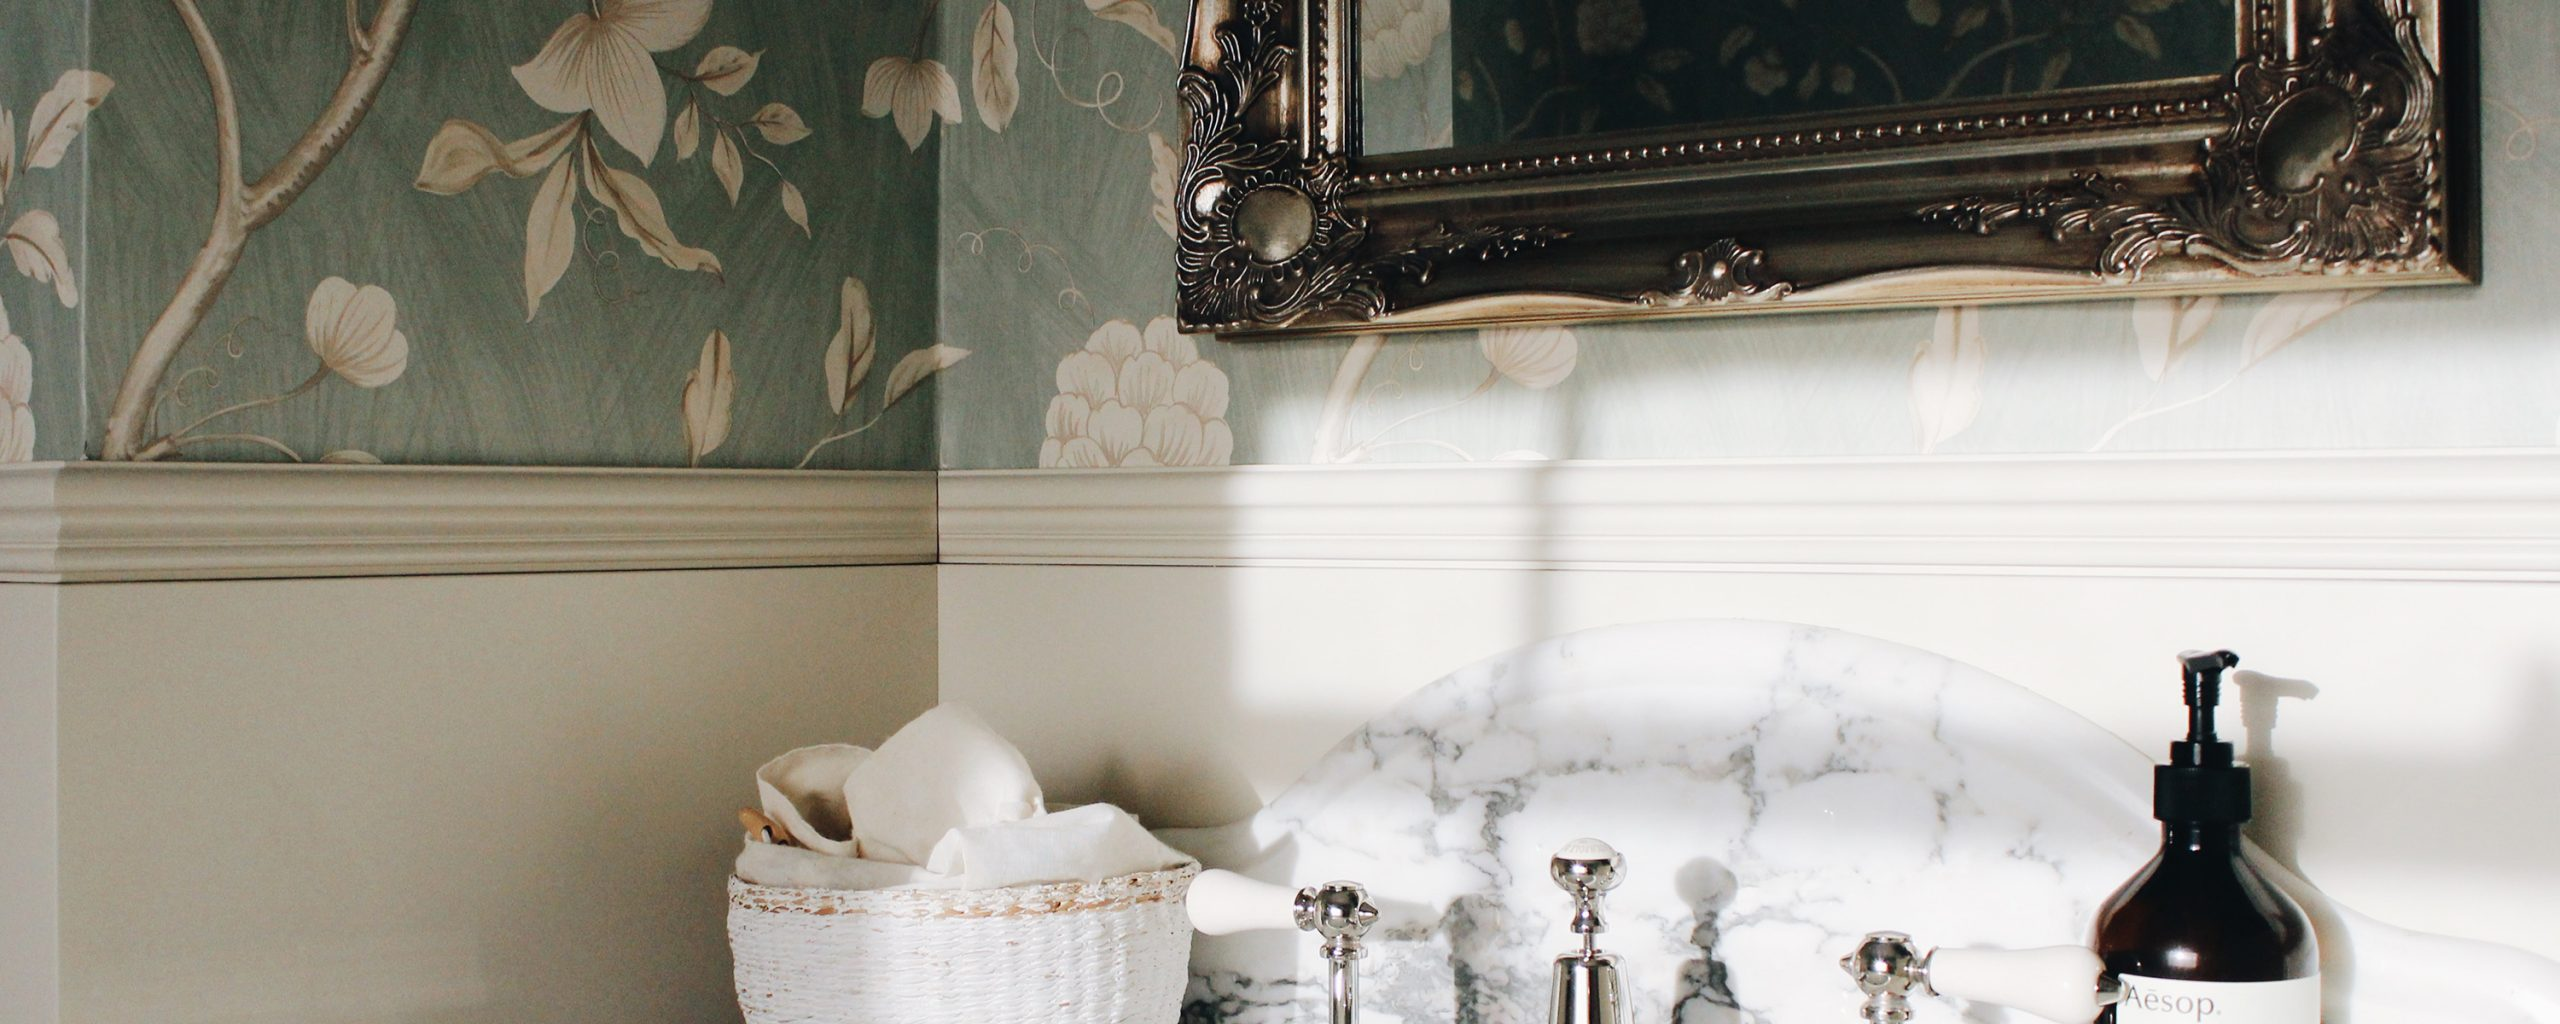 Temza London on how to use wallpaper to add a little extra romance to your bathroom